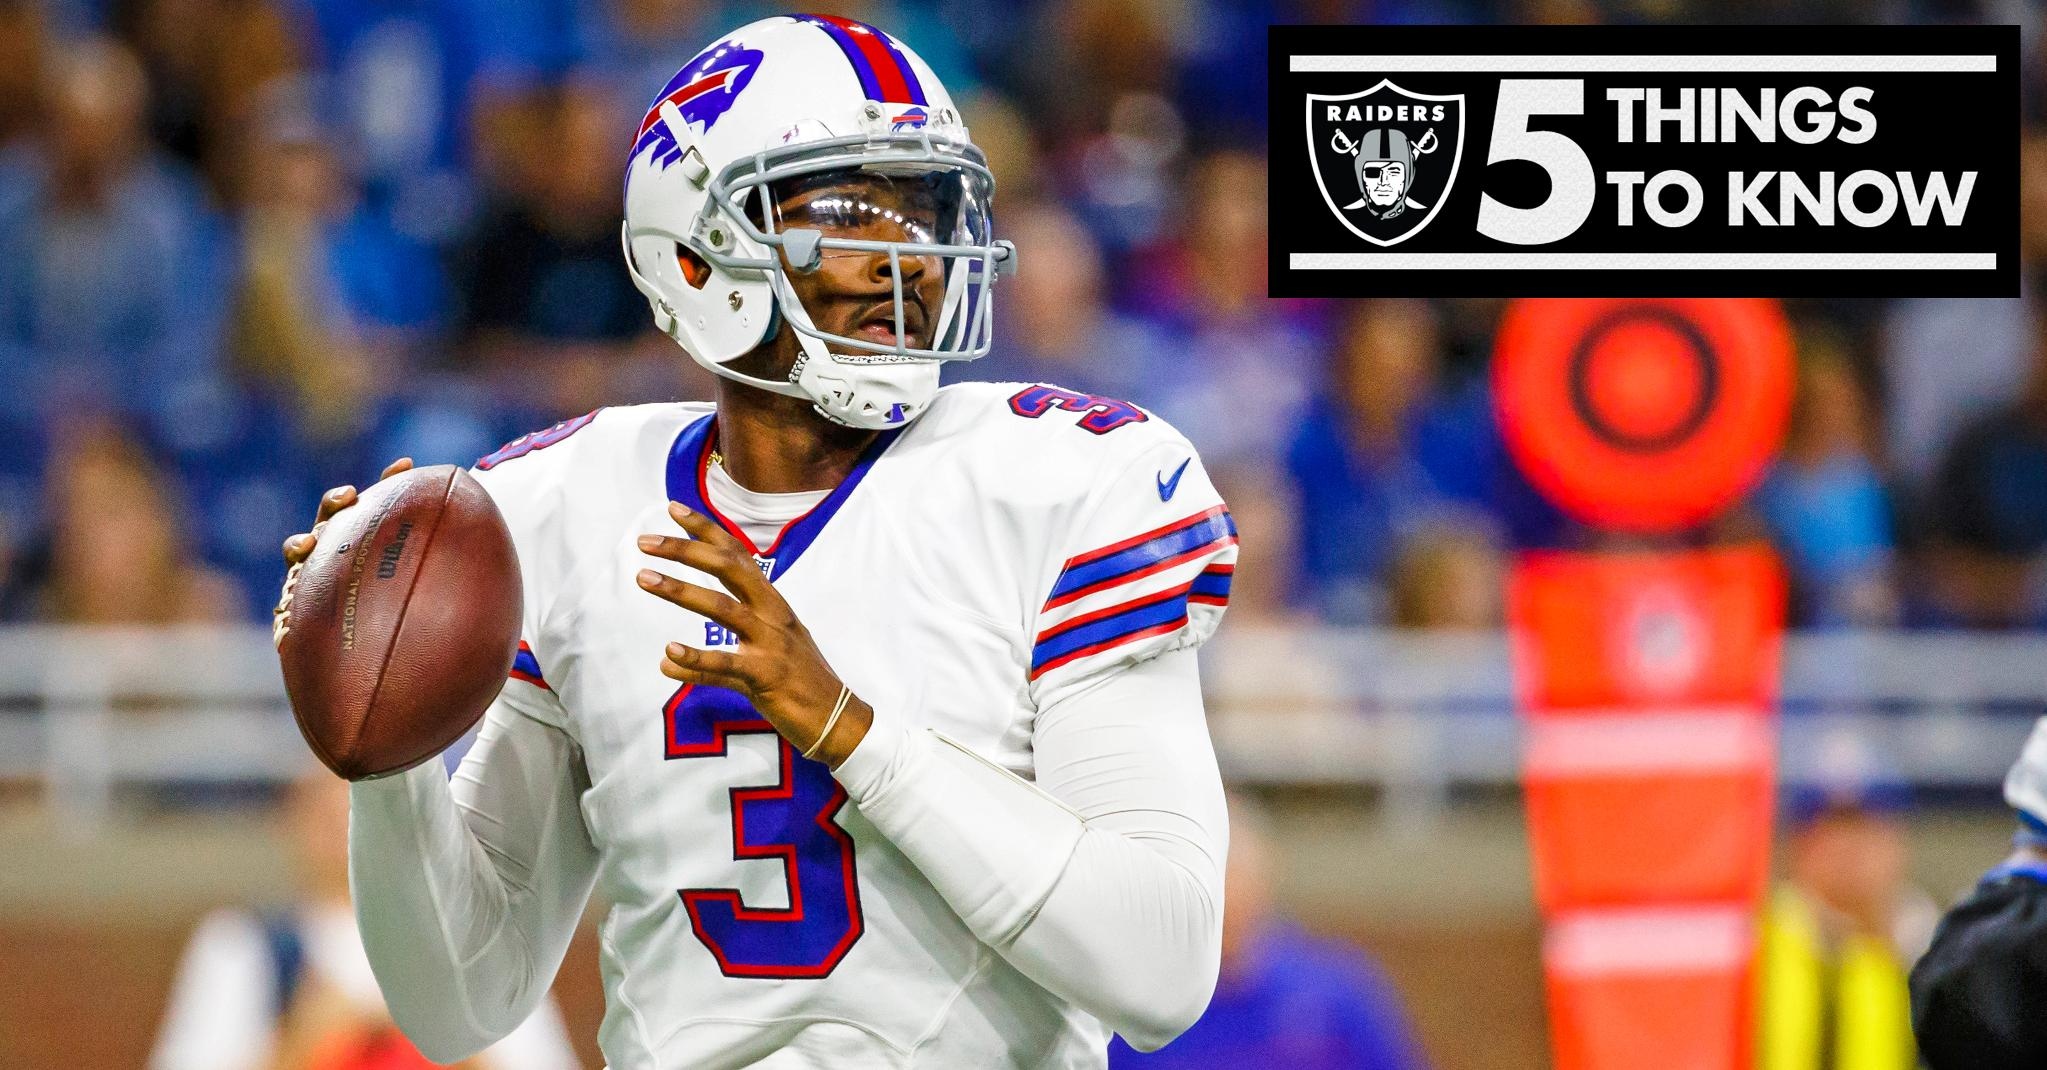 5 Things To Know About Quarterback EJ Manuel